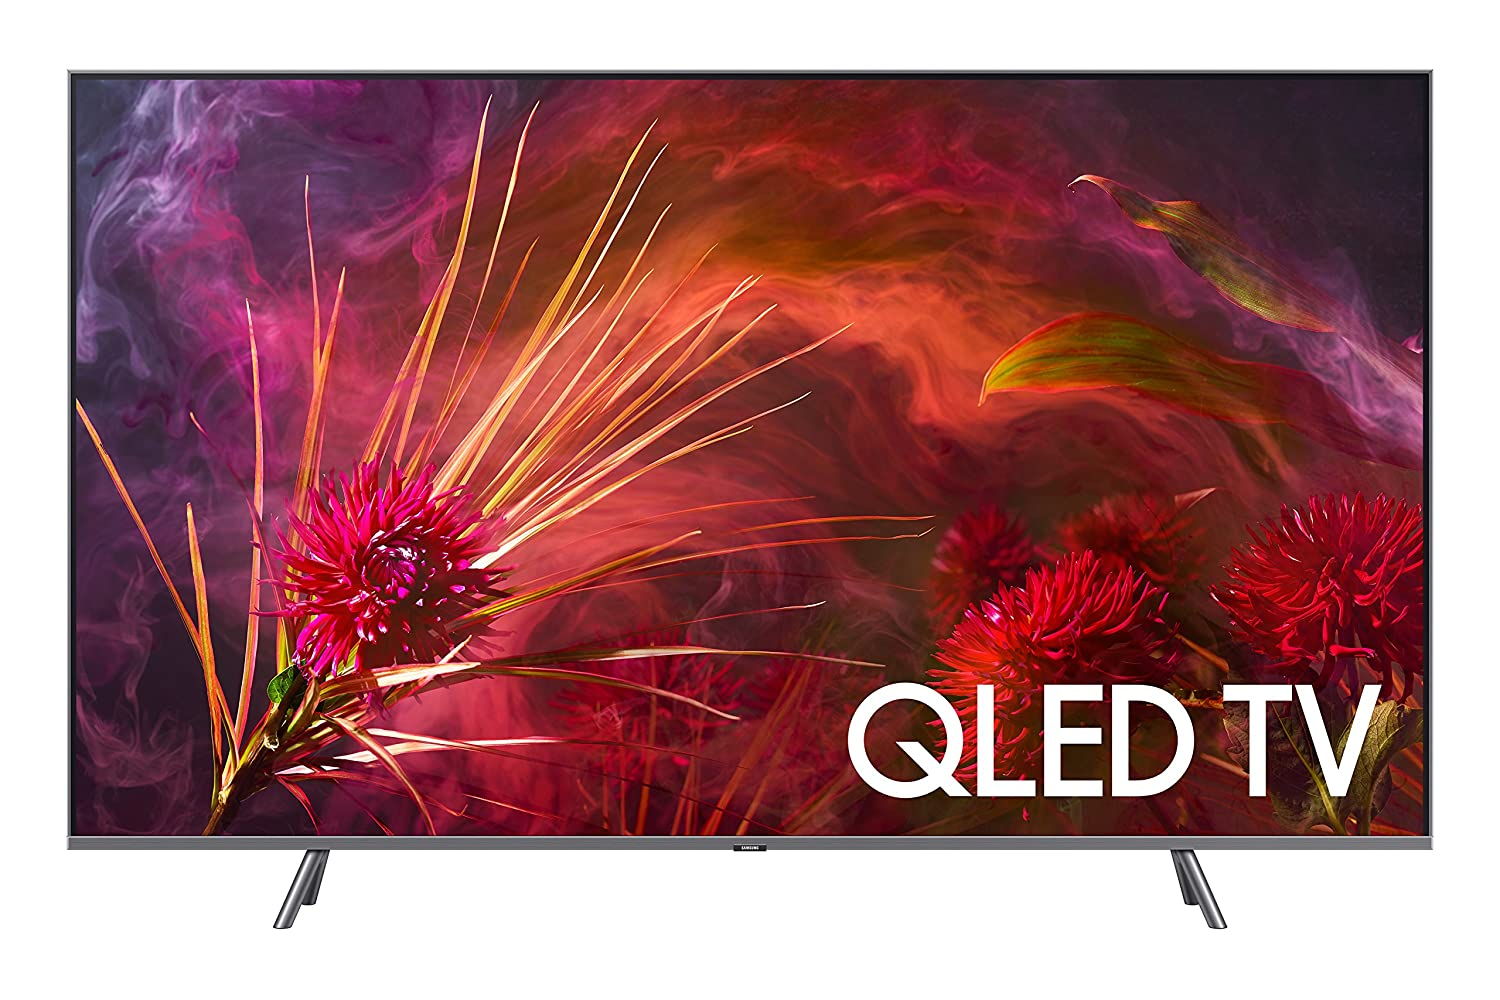 Samsung Q9FN Black Friday Deals 2019